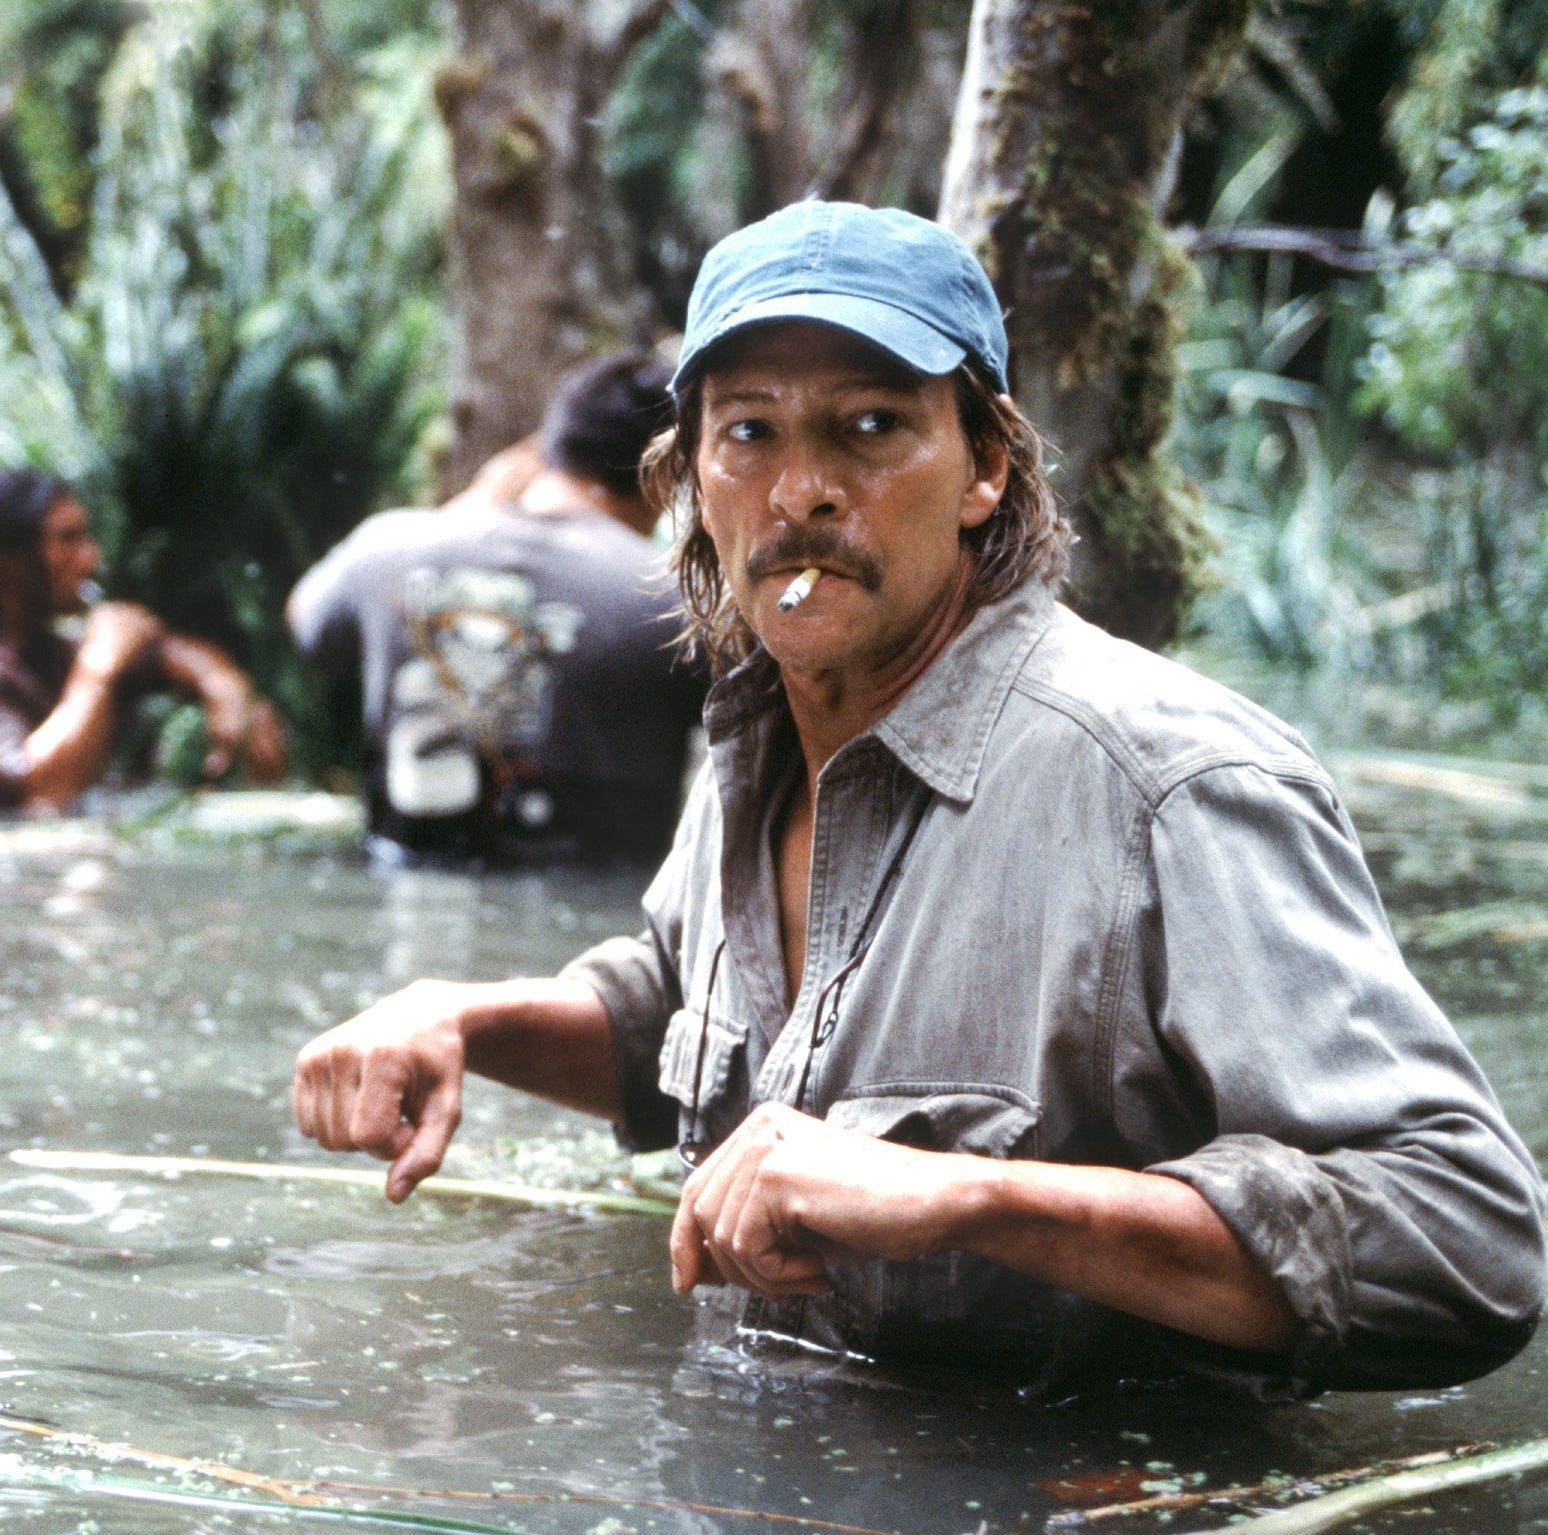 From Denzel Washington to Joe Pesci: What movies were filmed in Southwest Florida?